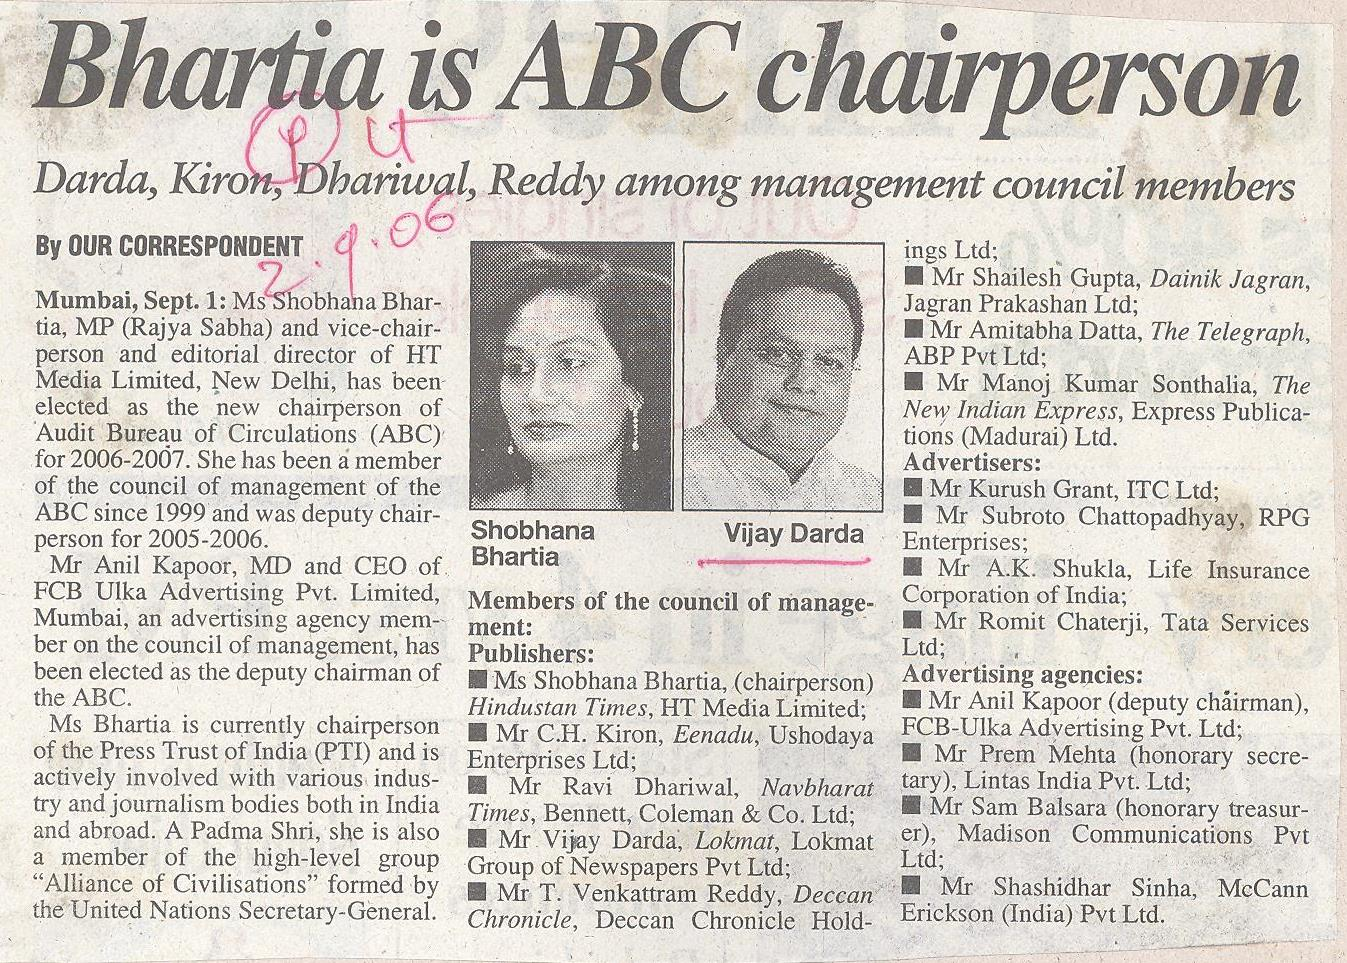 Bhartia is ABC chairperson